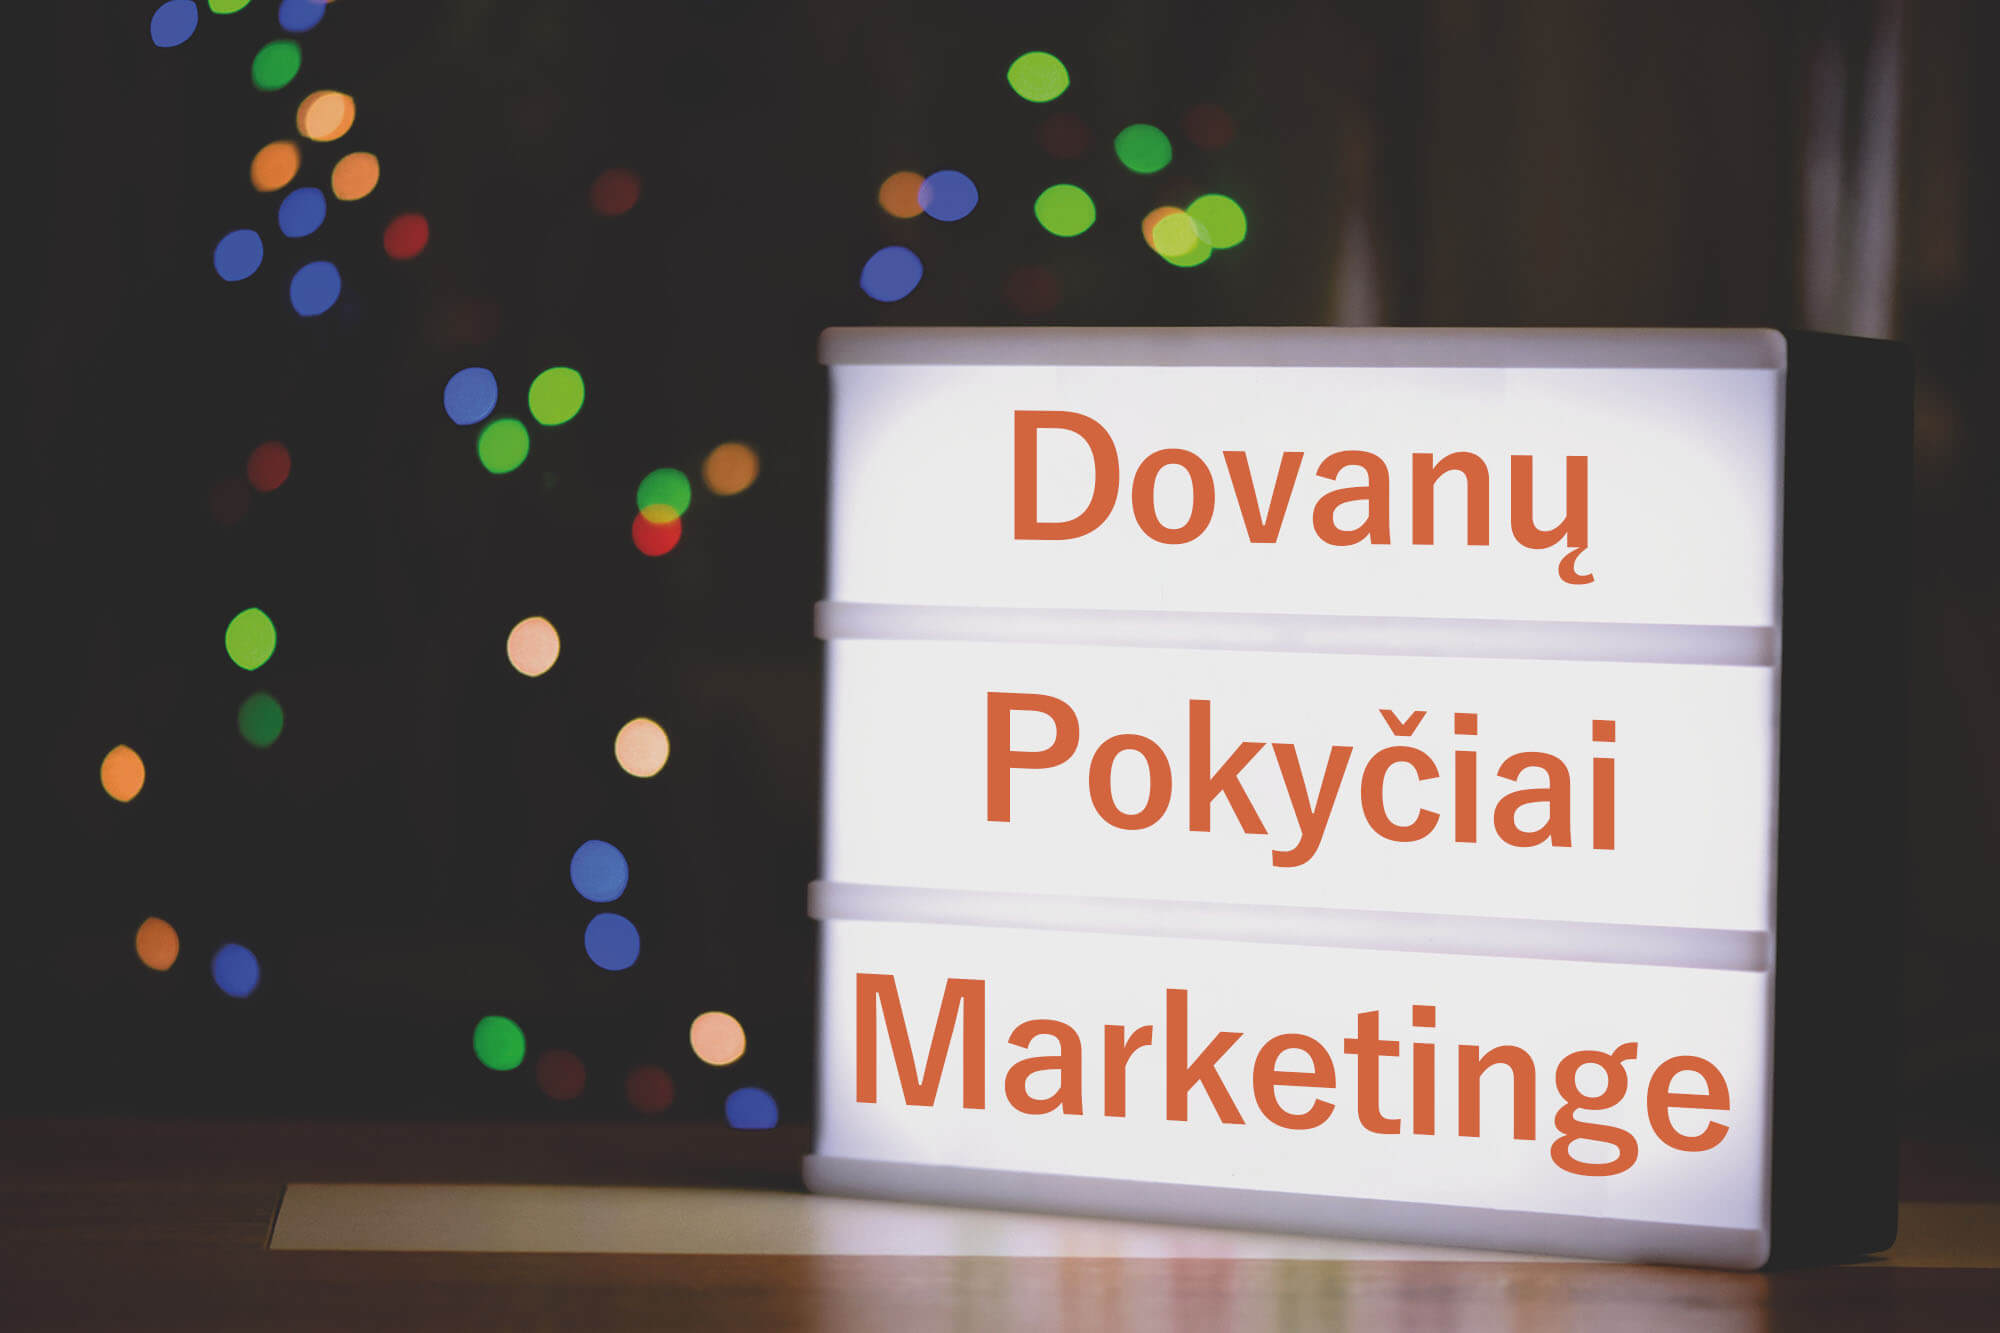 Dovanu-Pokyciai-Marketinge-Multidora